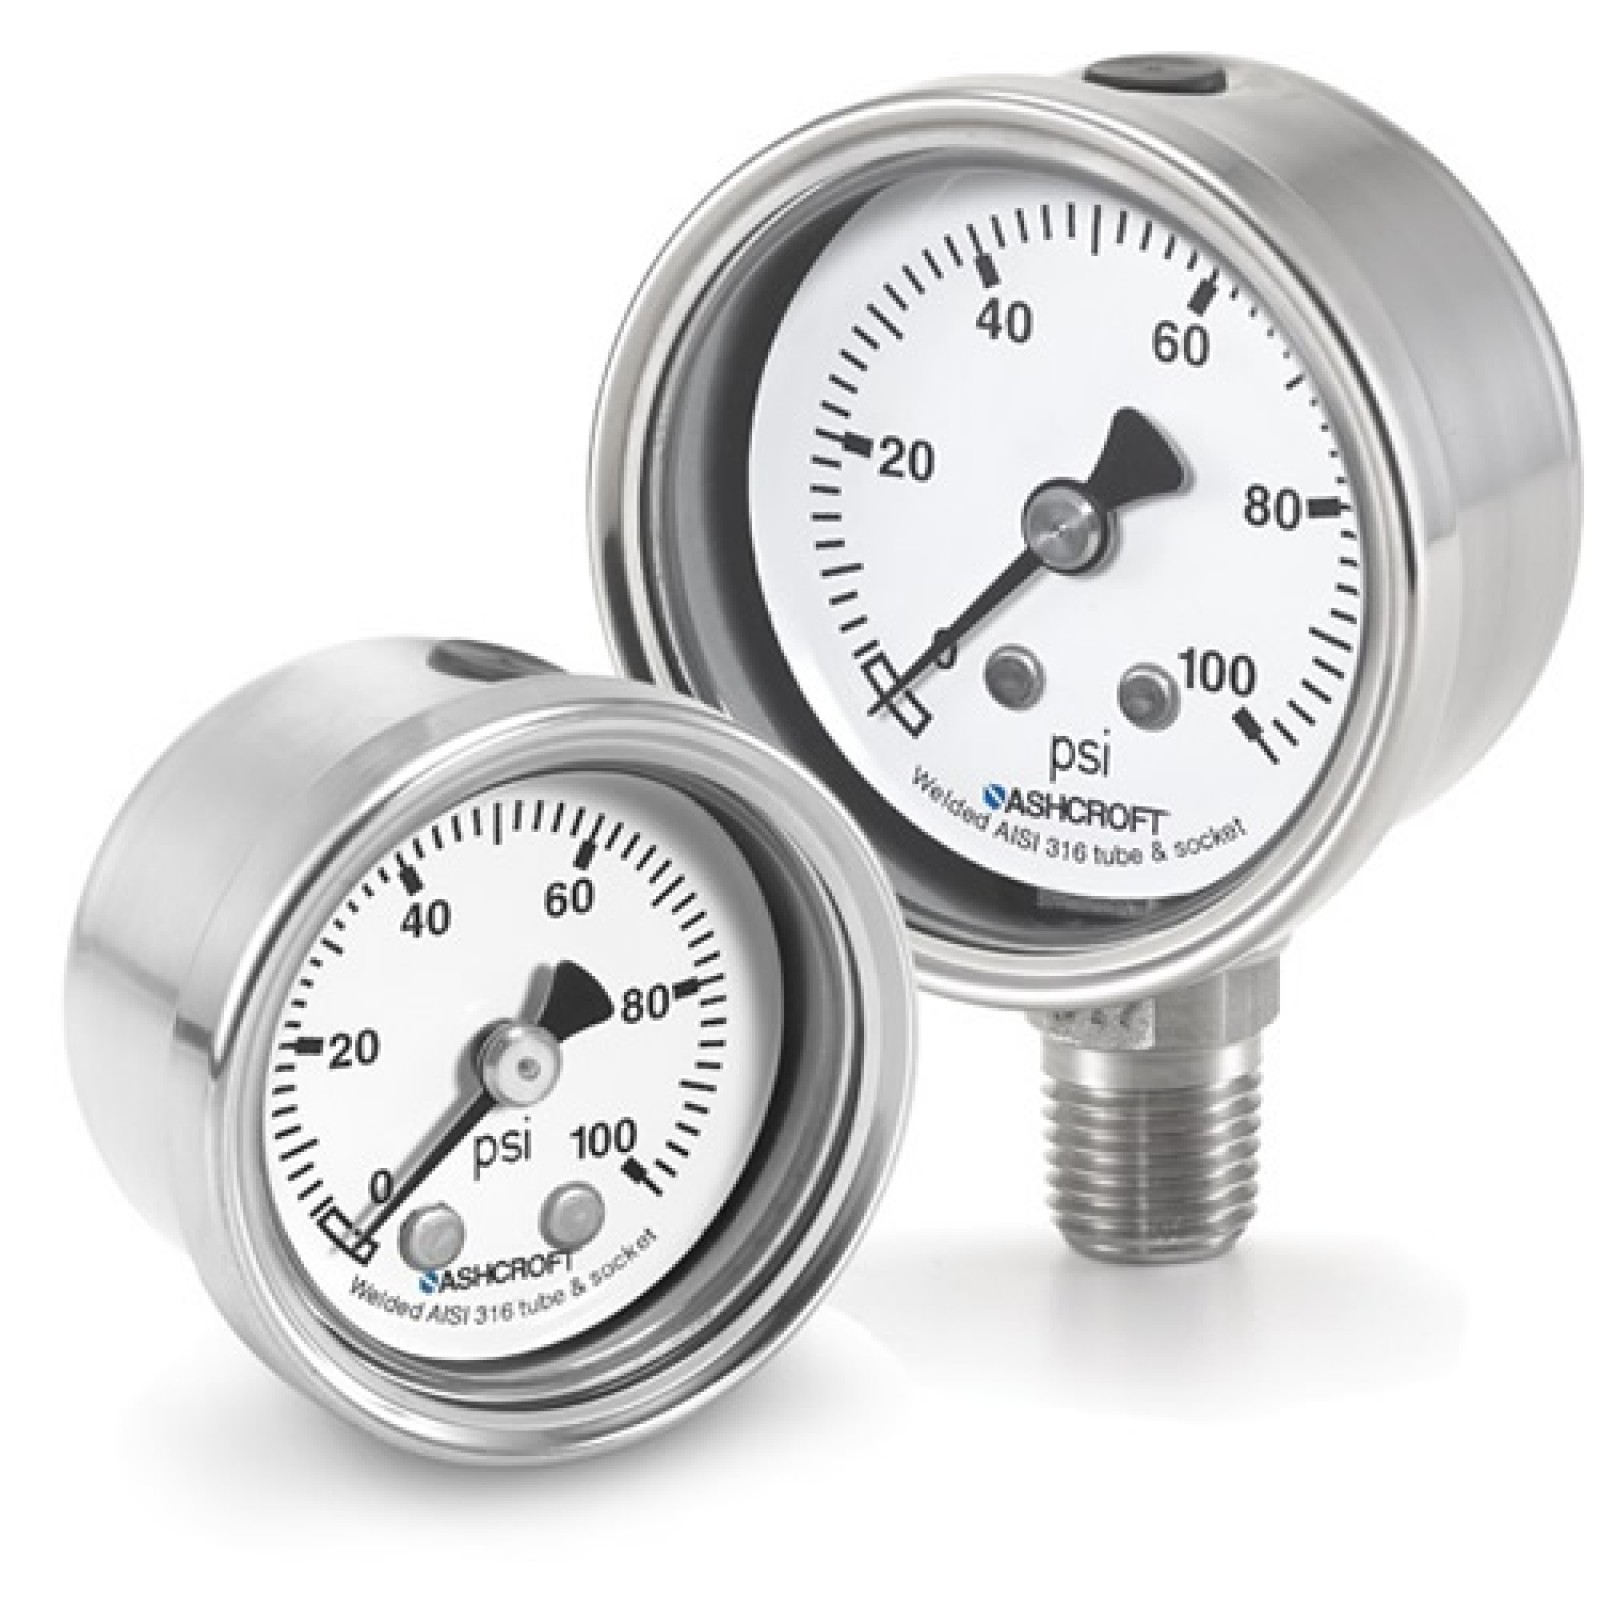 "10 1008S 02L XLL 5000#/KP - Pressure Gauge, 100mm stainless 1/4"" NPT Lower conn & Case, Plus Performance, 0/5000 psi"